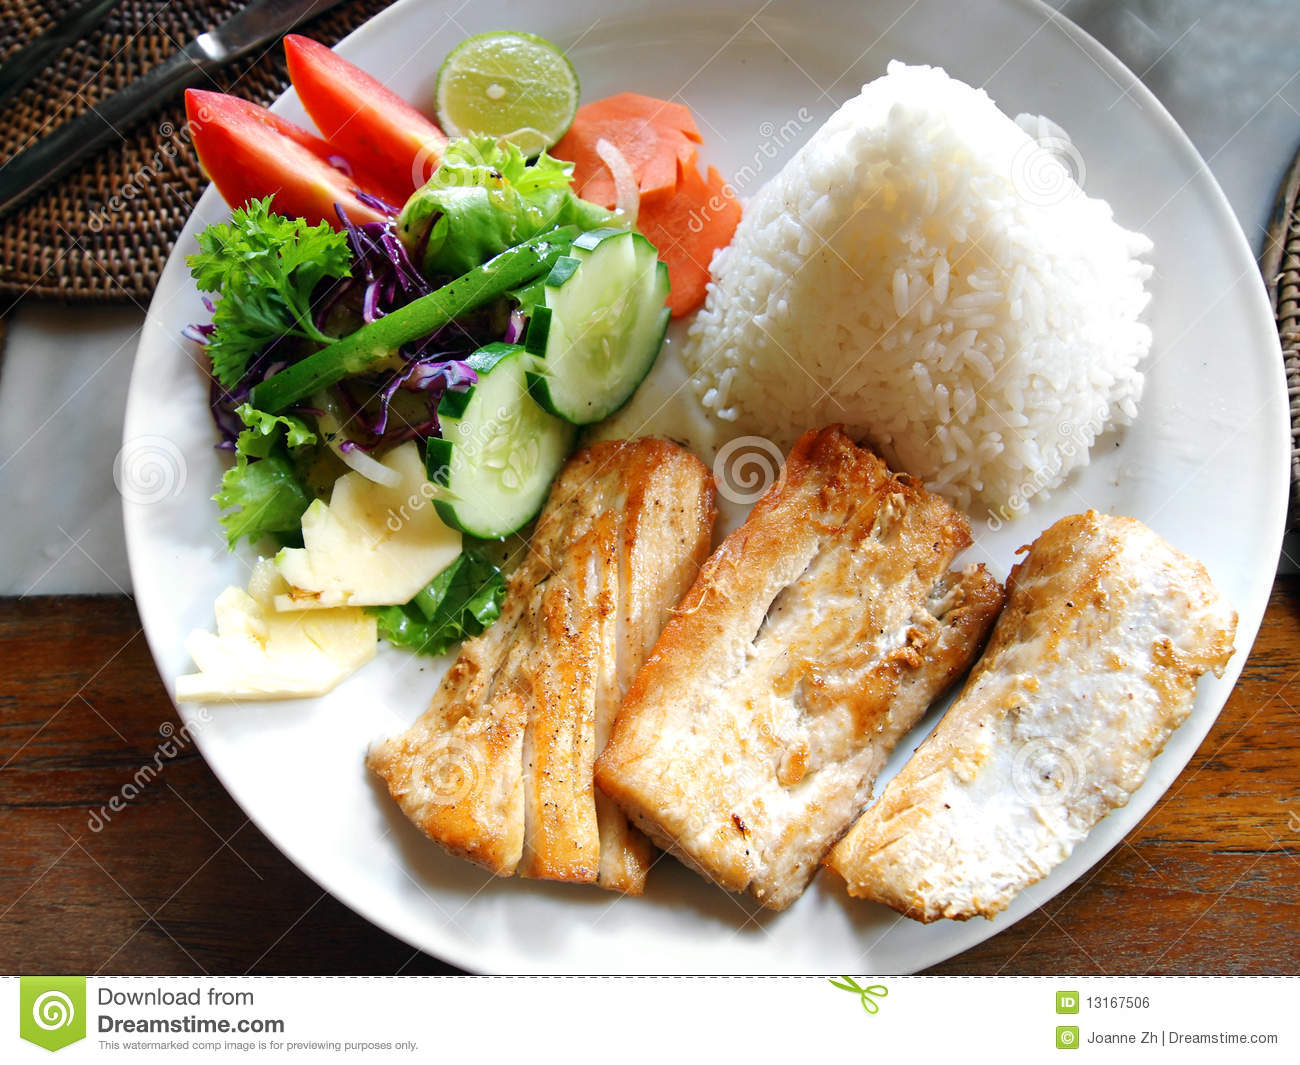 Fish Dish With Vegetable Side Salad Stock Photo  Image of